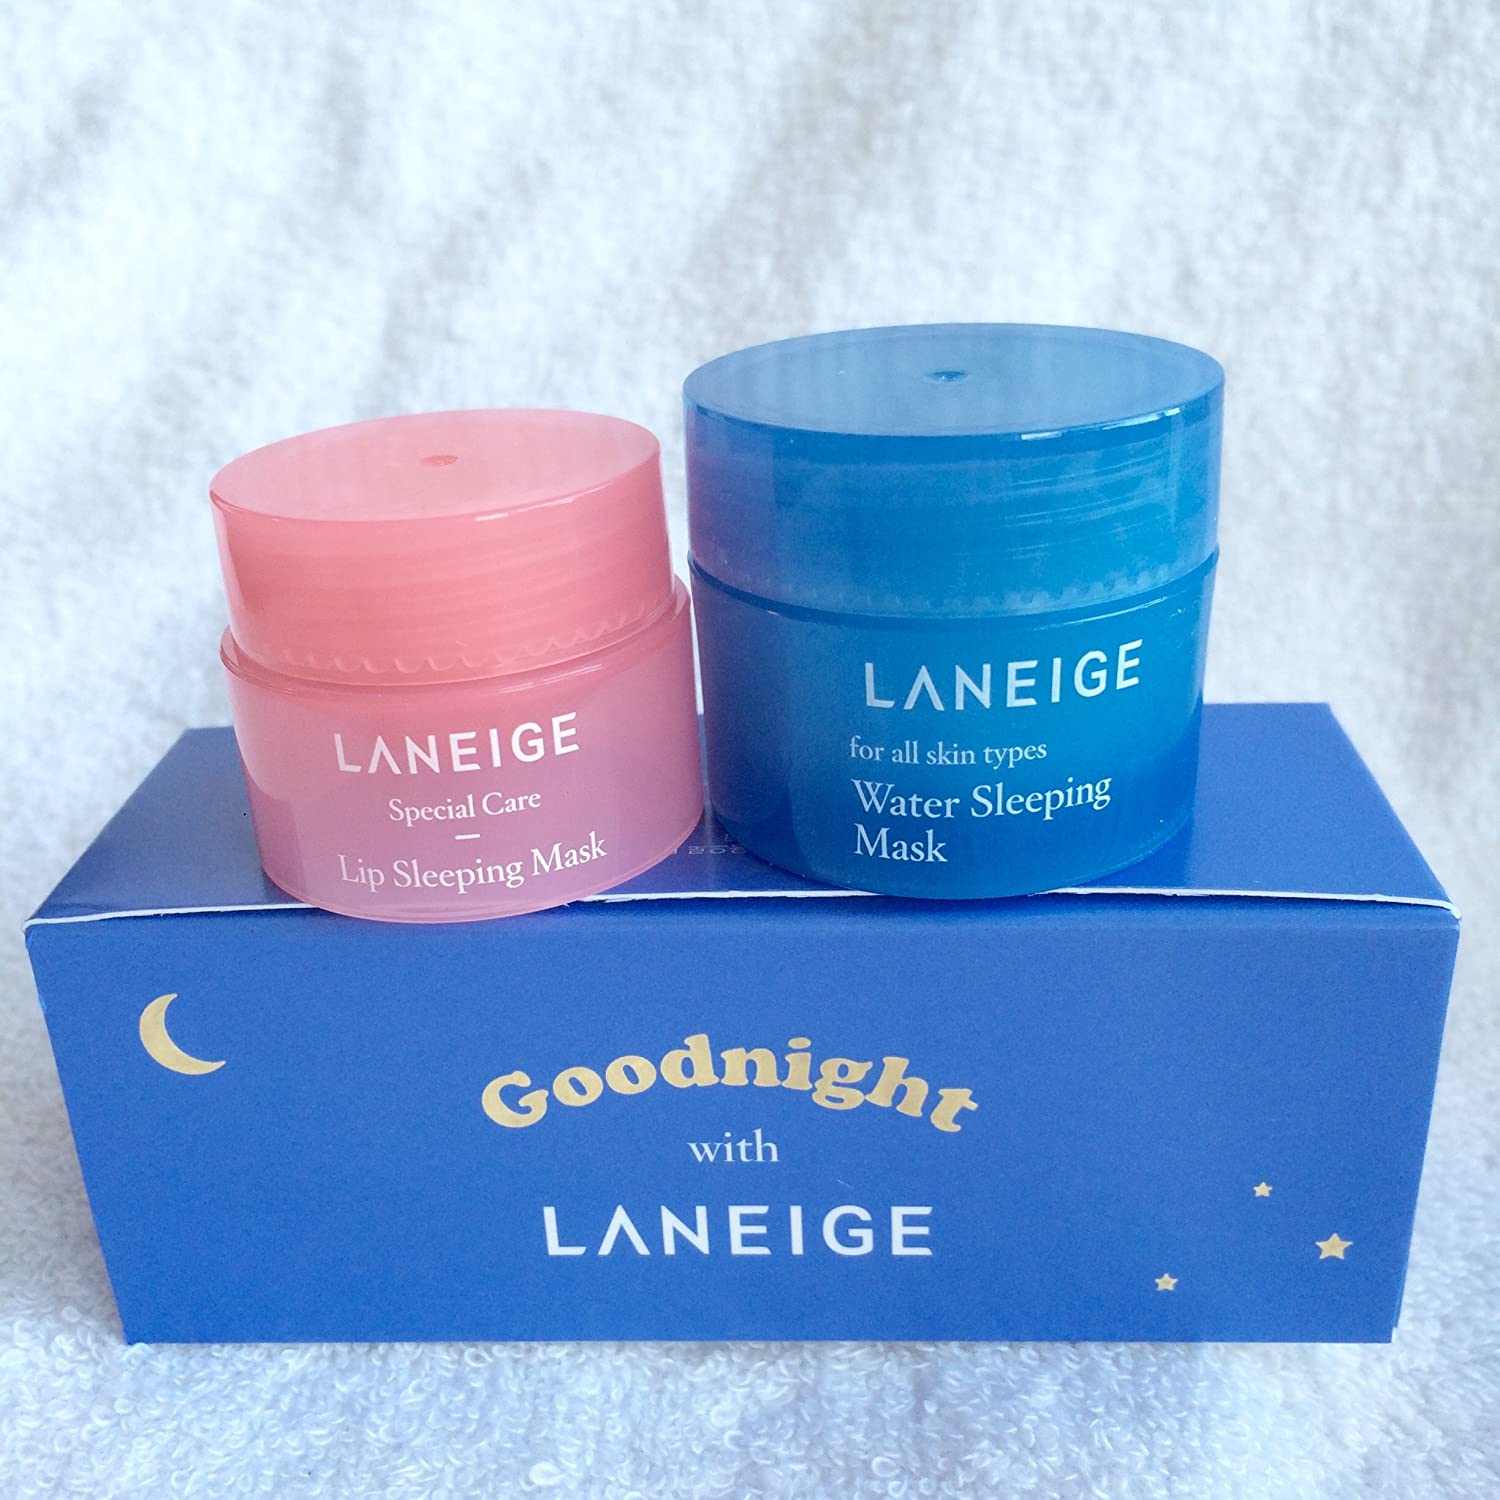 - Laneige Goodnight Sleeping Care Kit (Water Sleeping Mask 15Ml + Lip Sleeping Mask 3G)